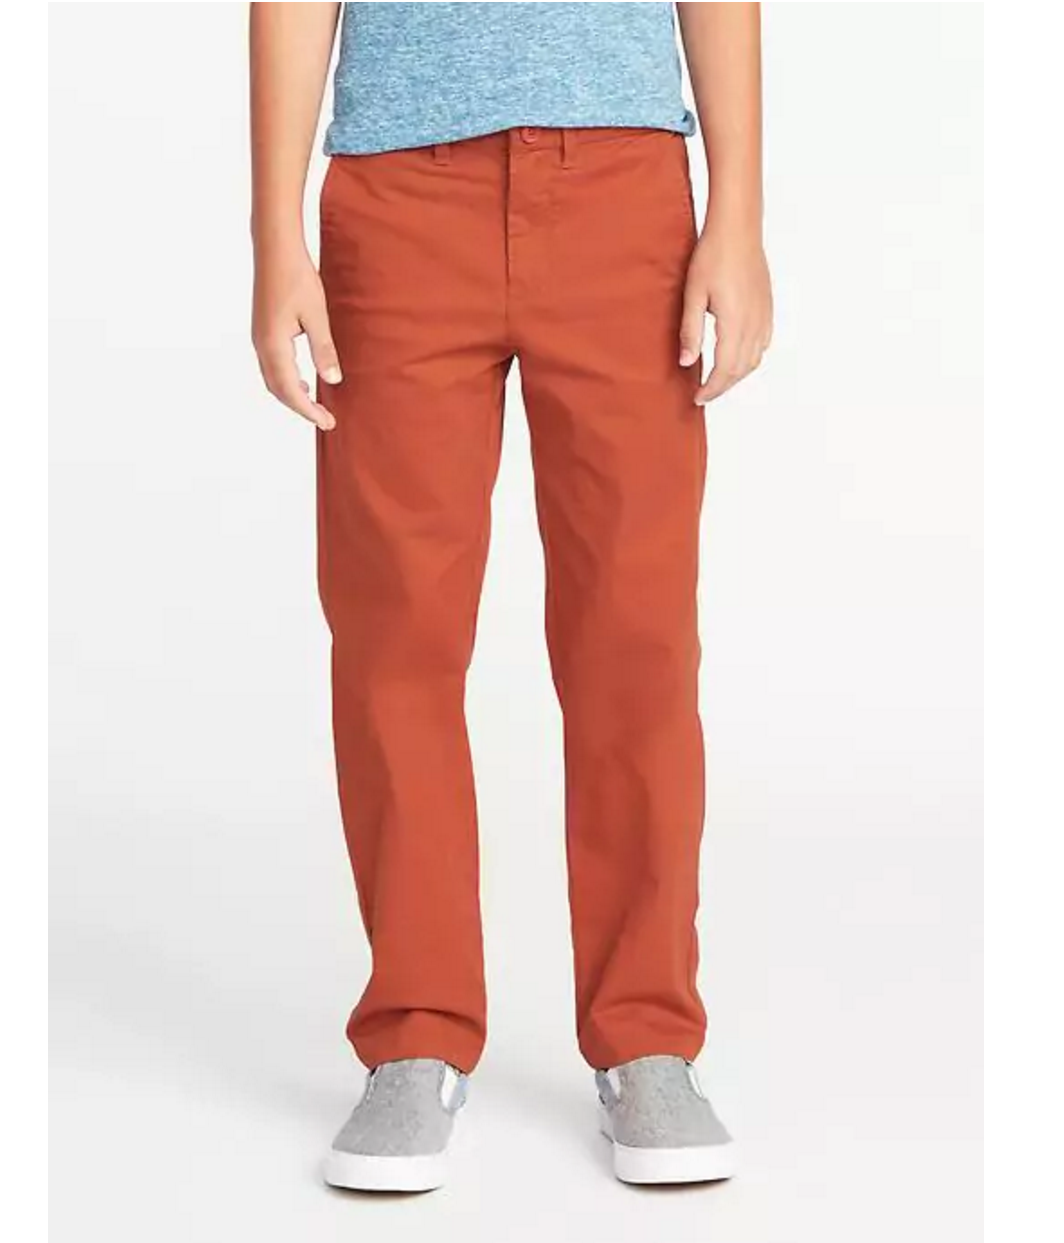 Tanger Outlets Old Navy Outlet boy's slim khaki pants